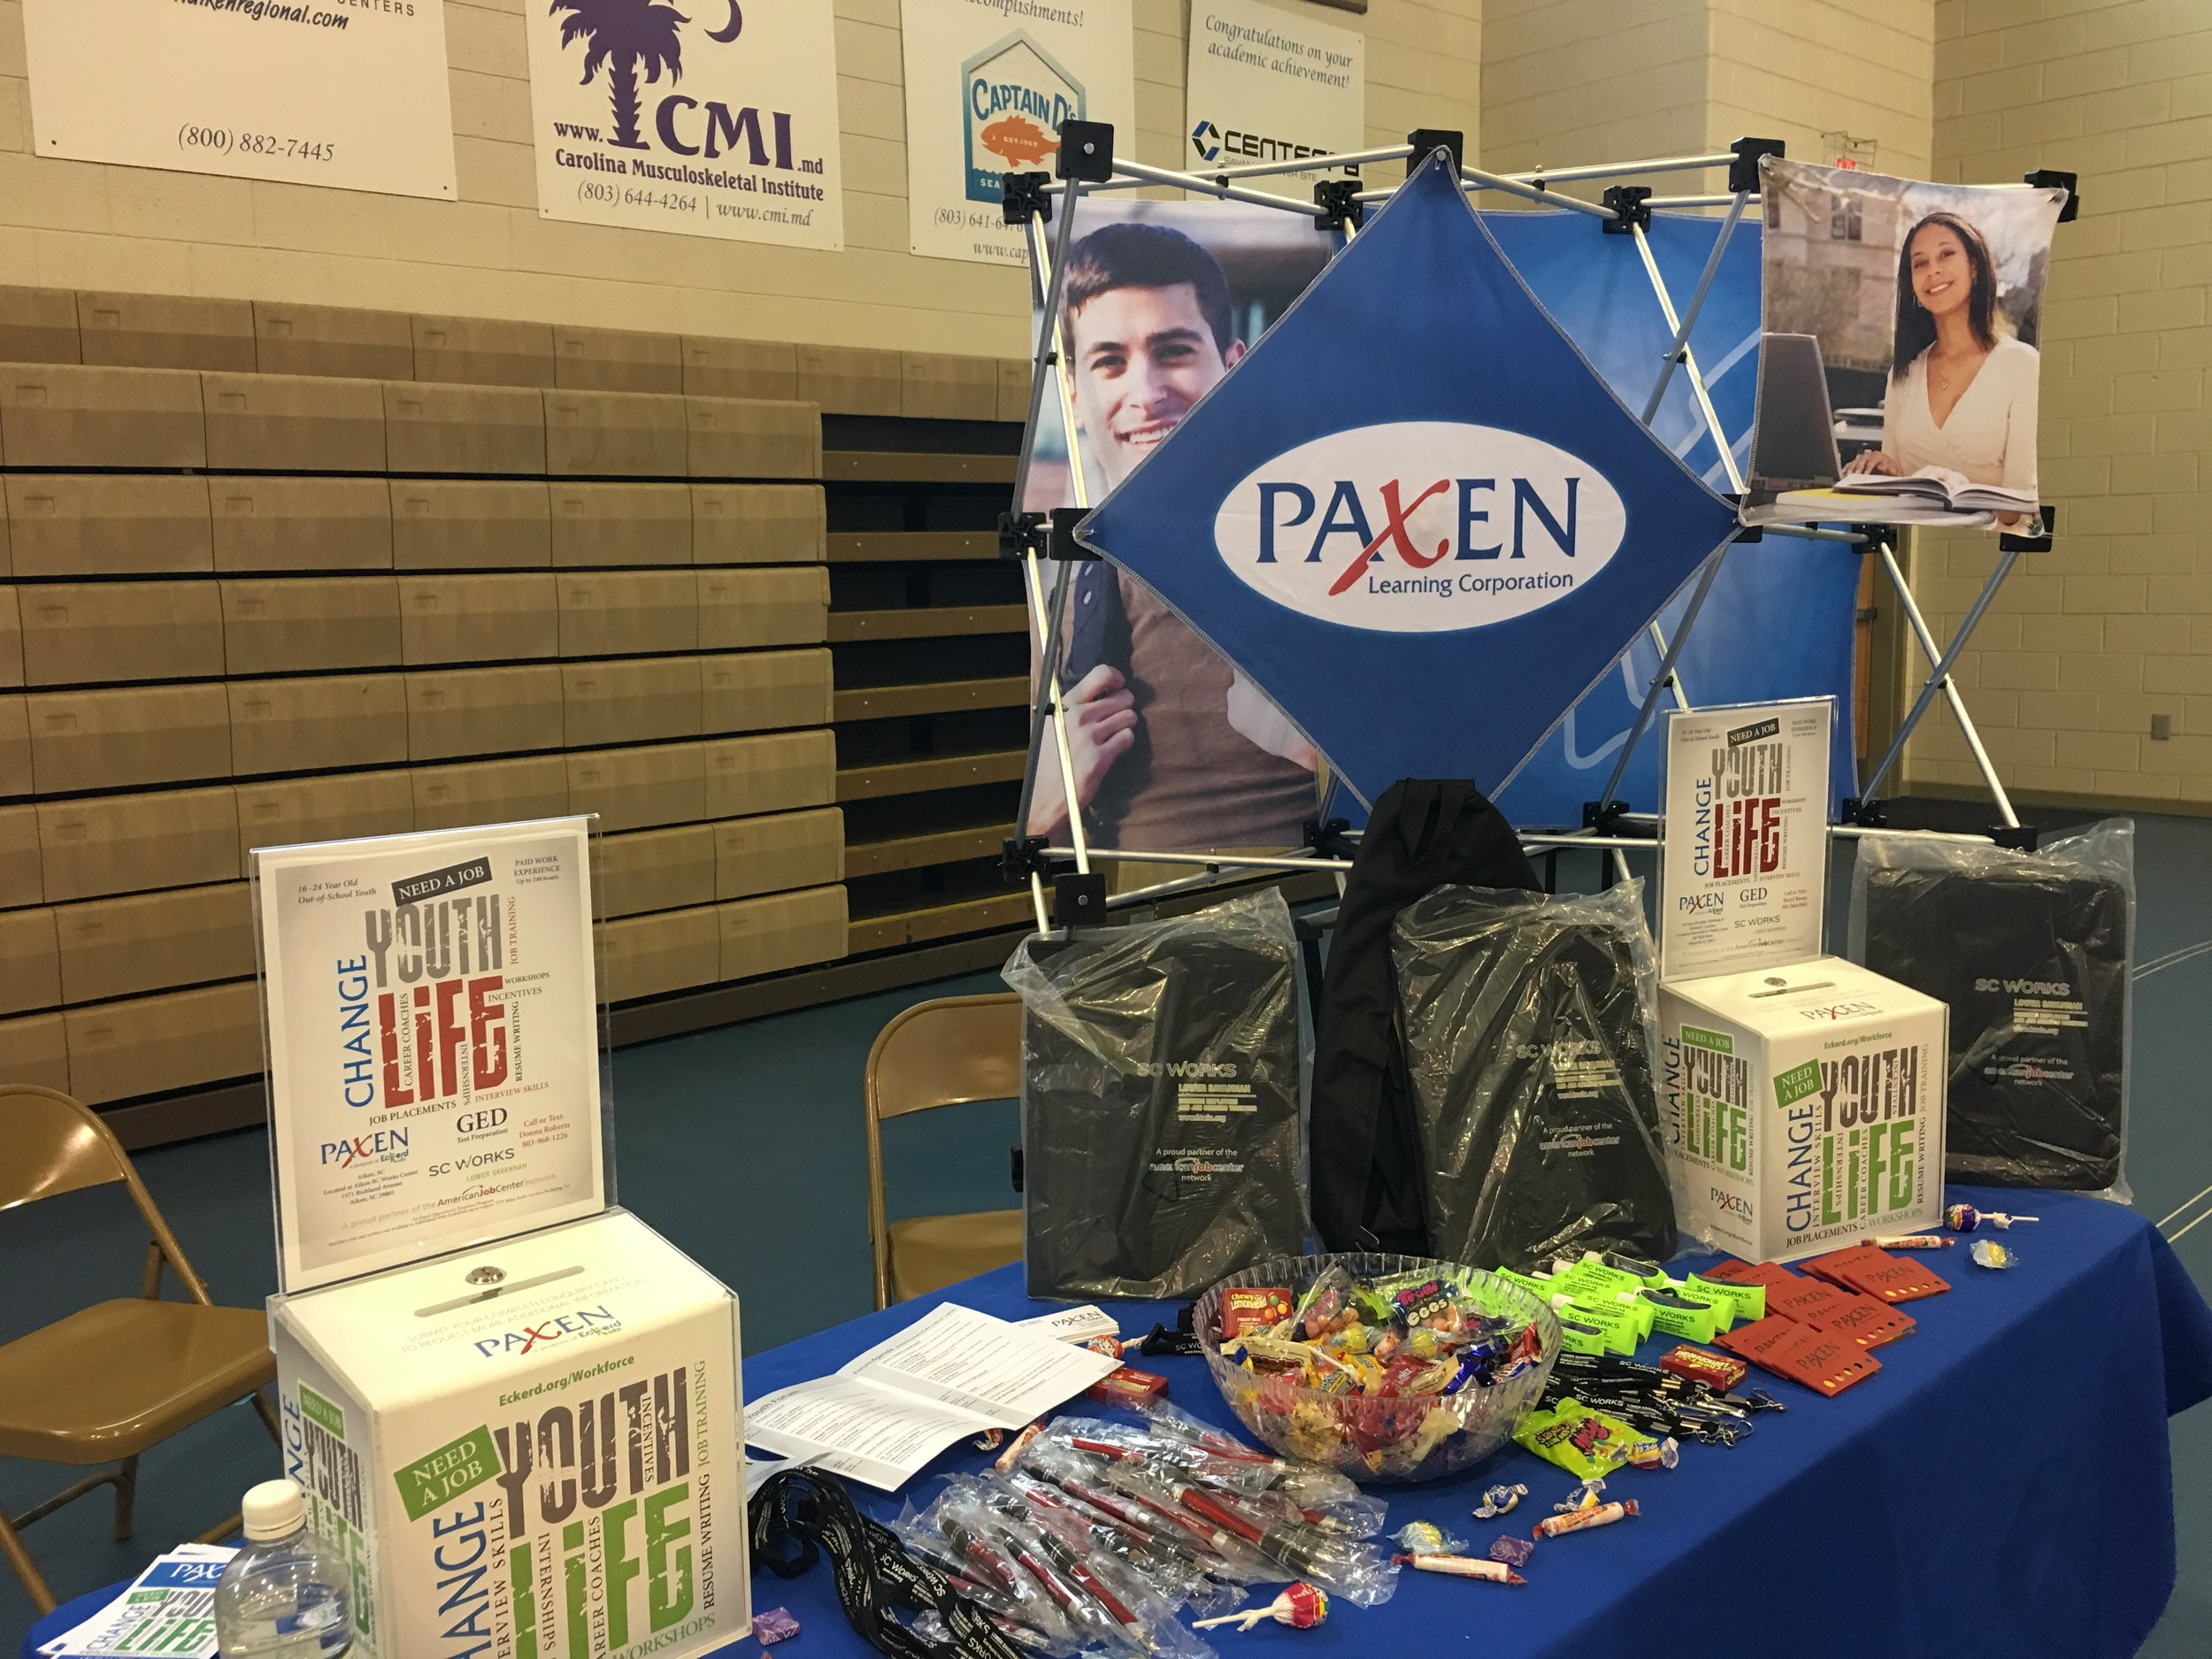 The info booth at the Aiken Technical College Youth Forum.